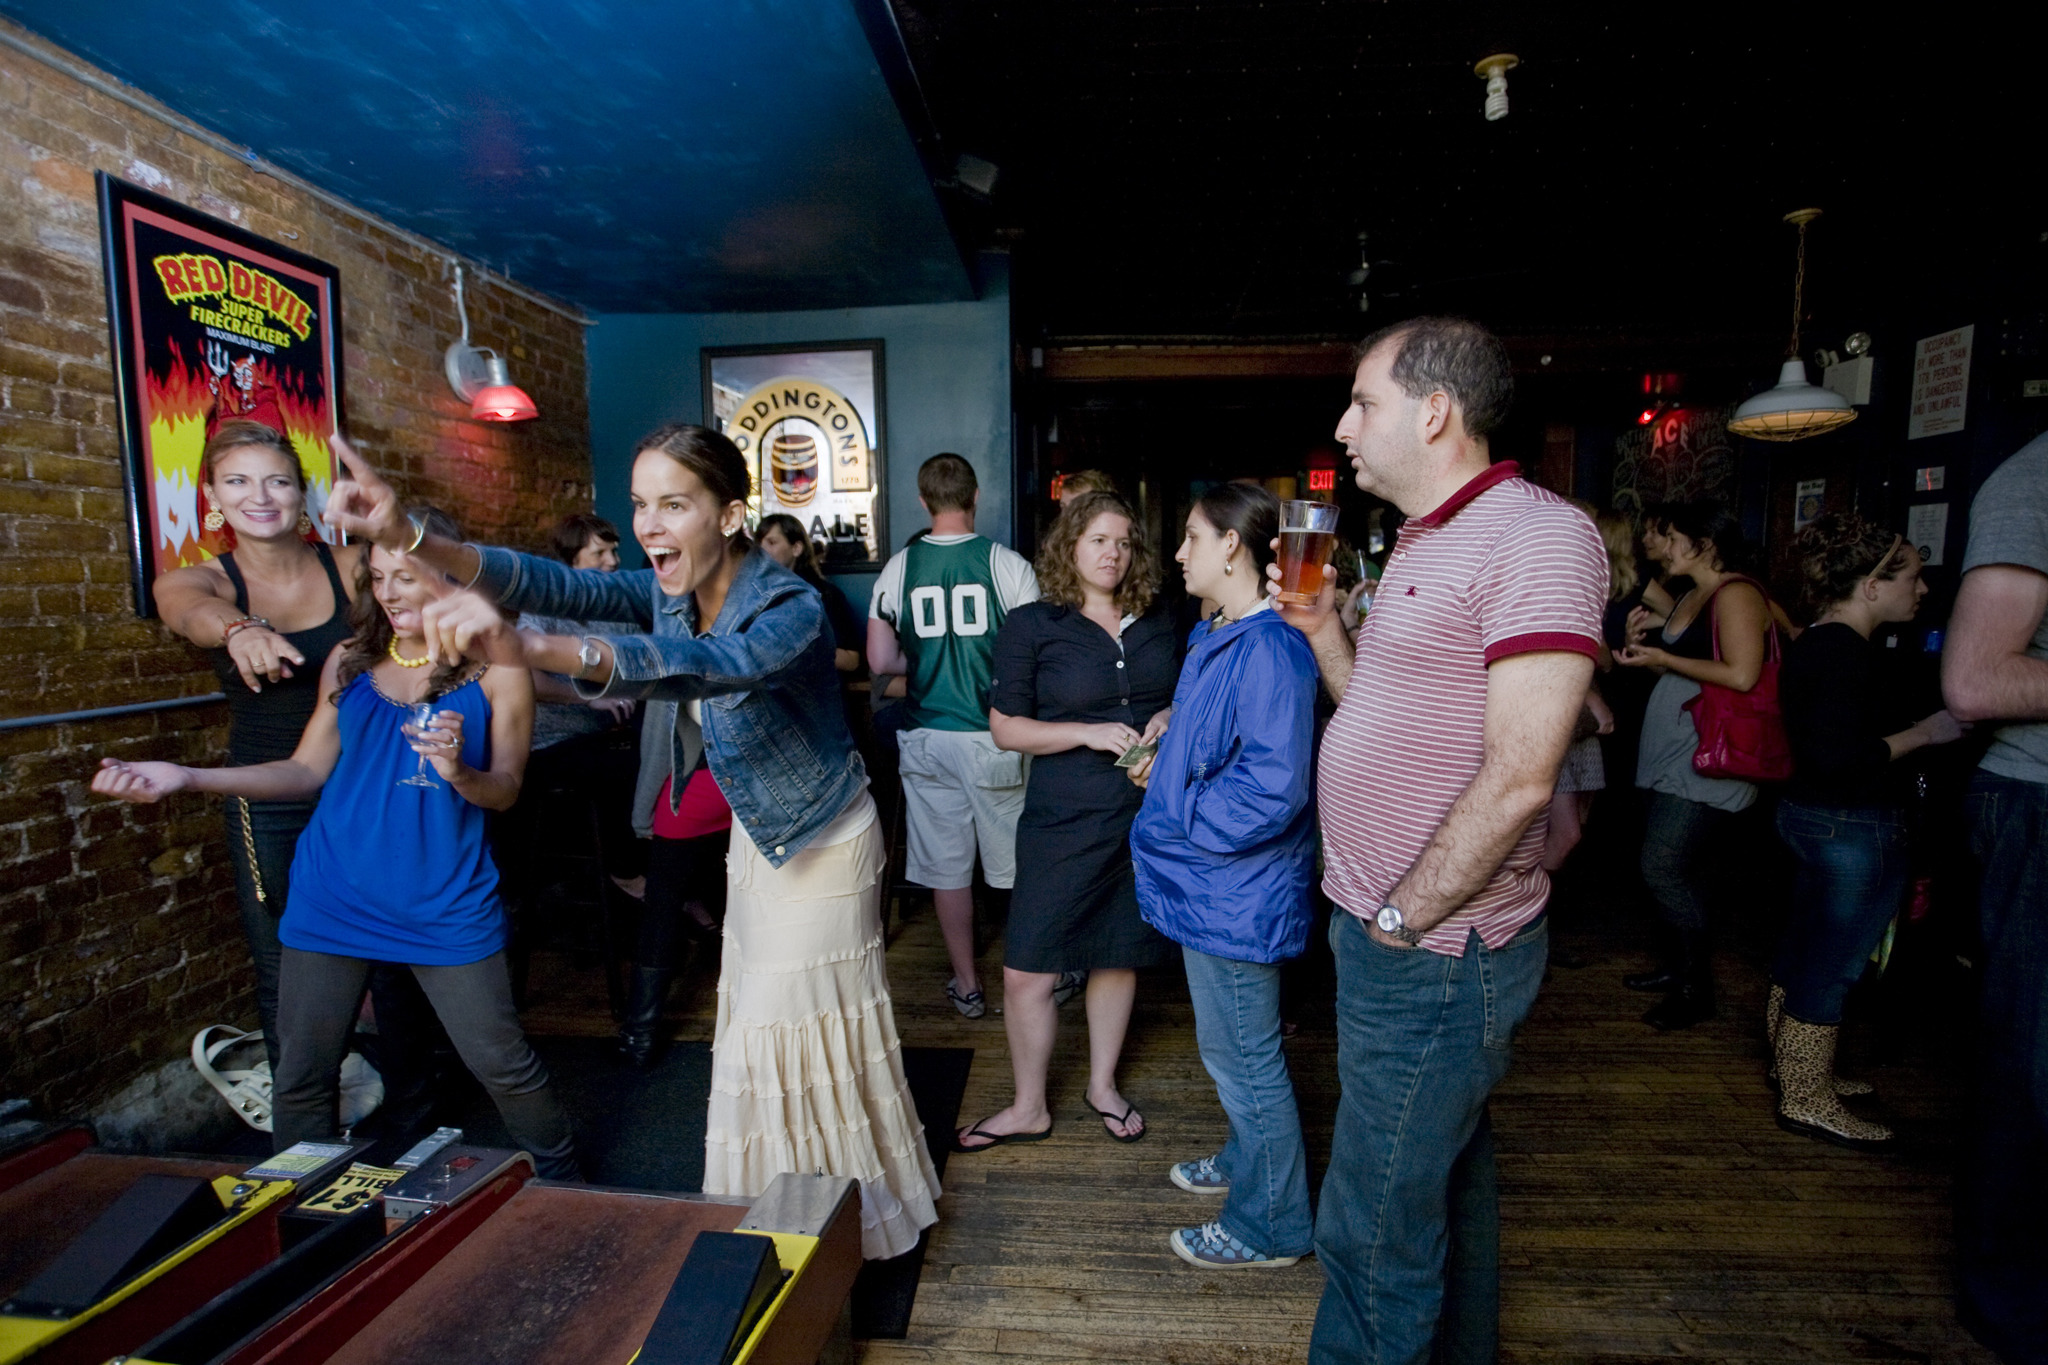 Bars with games, Skee-Ball, trivia and other activities